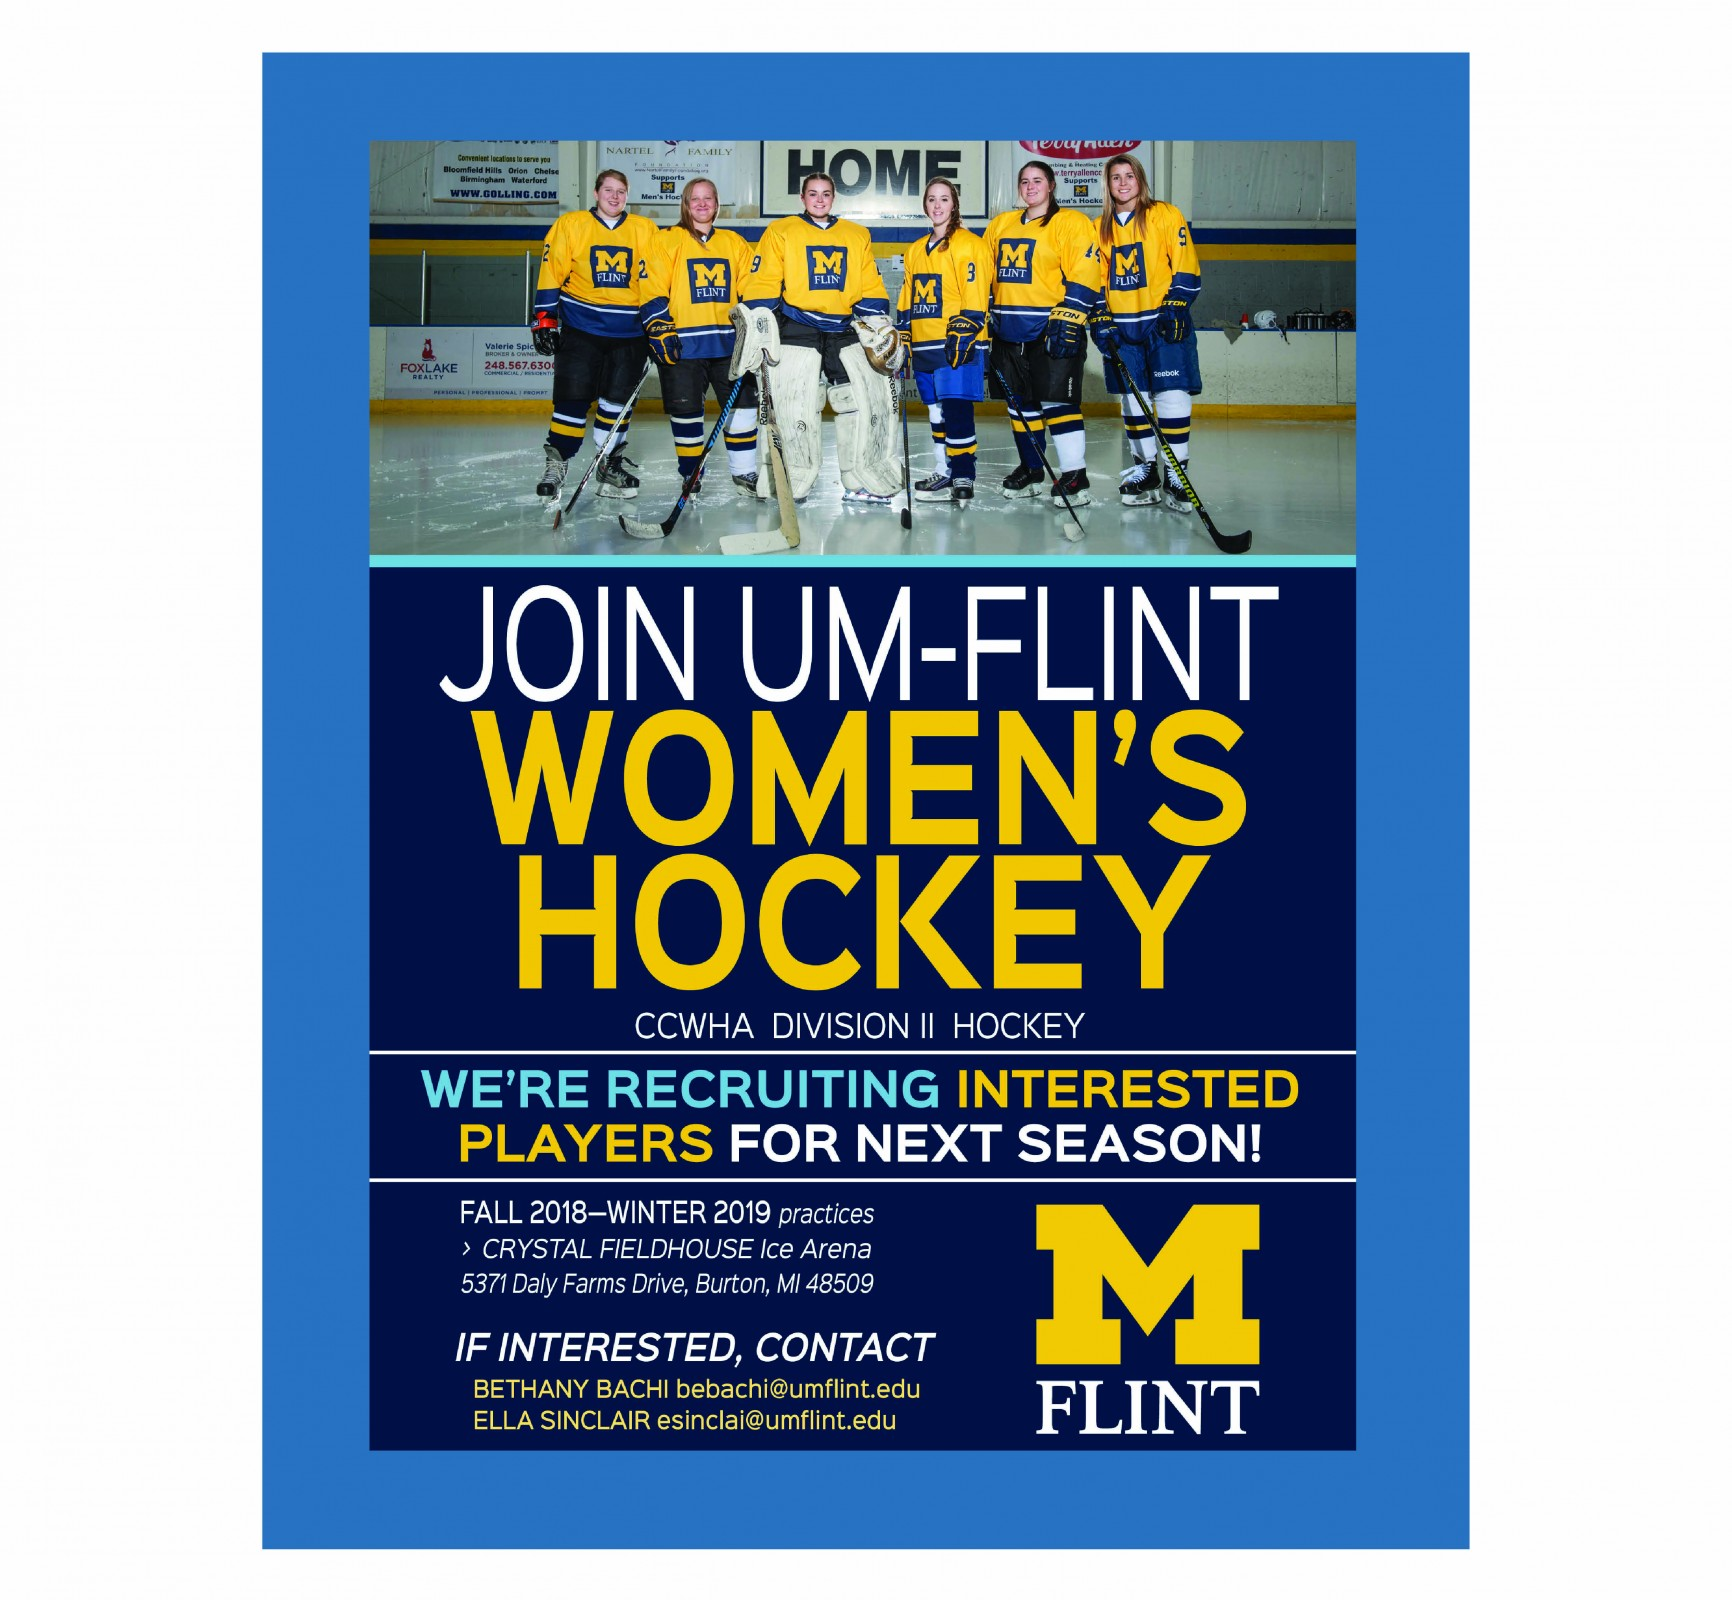 Women's Ice Hockey is recruiting for next season